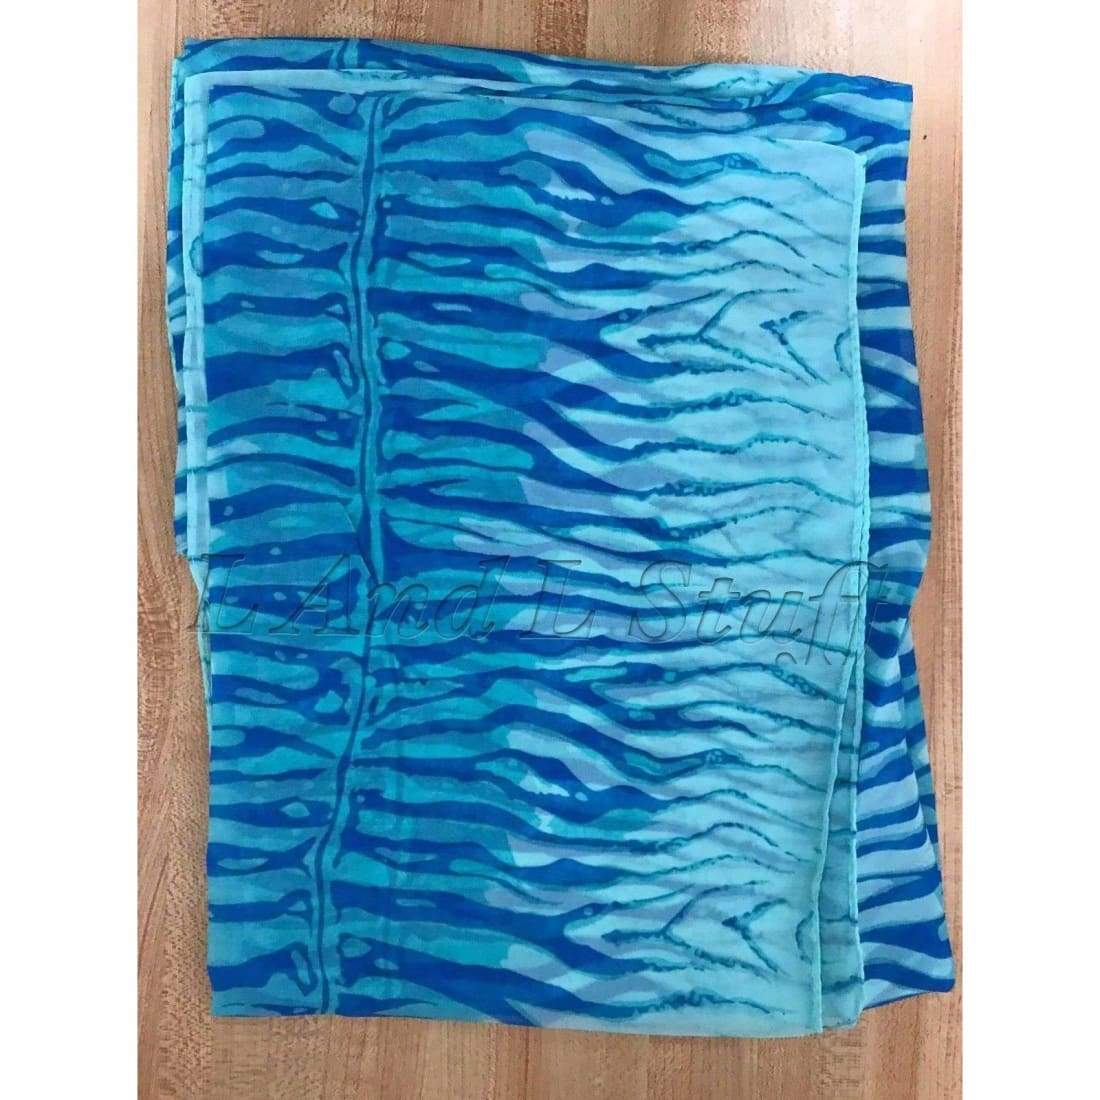 Womens Lightweight Tiger Print Sheer Scarf (Assorted Colors) Blue/blue Scarves & Wraps